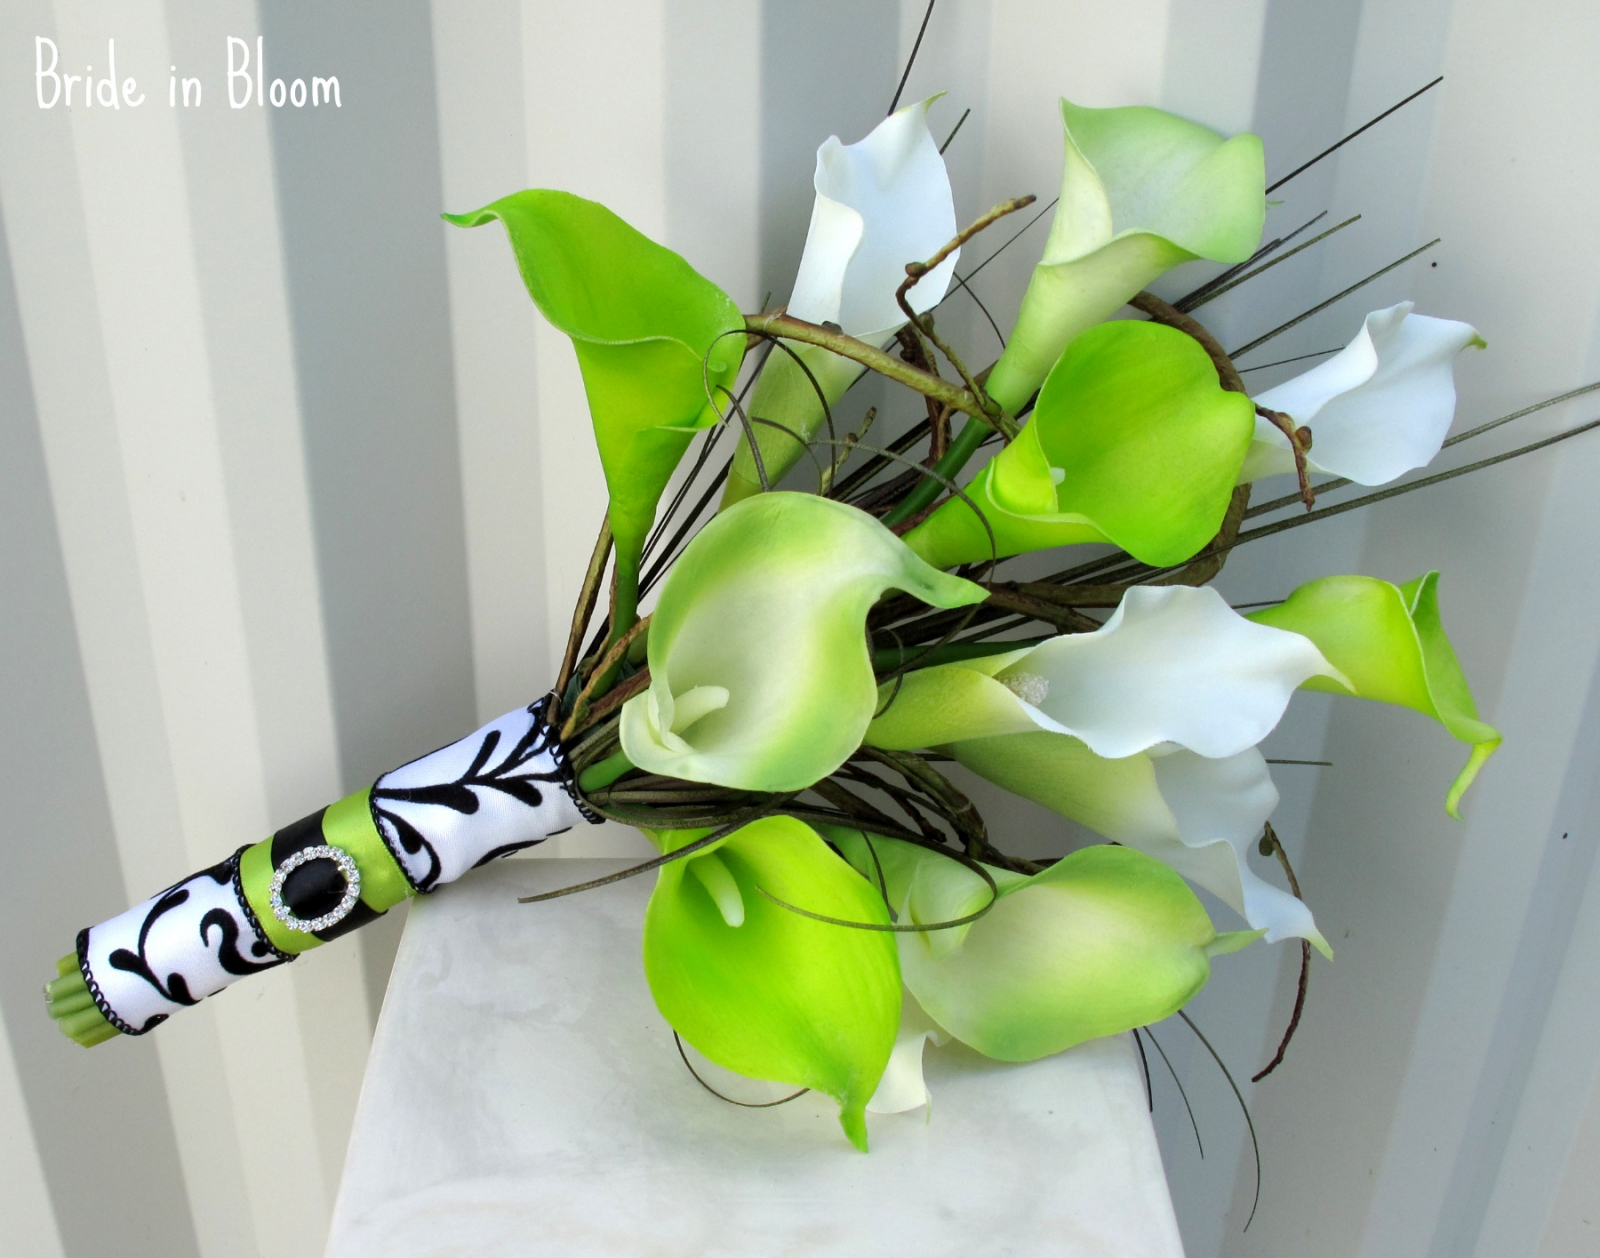 Lime green white calla lily wedding bouquet   Bride in Bloom